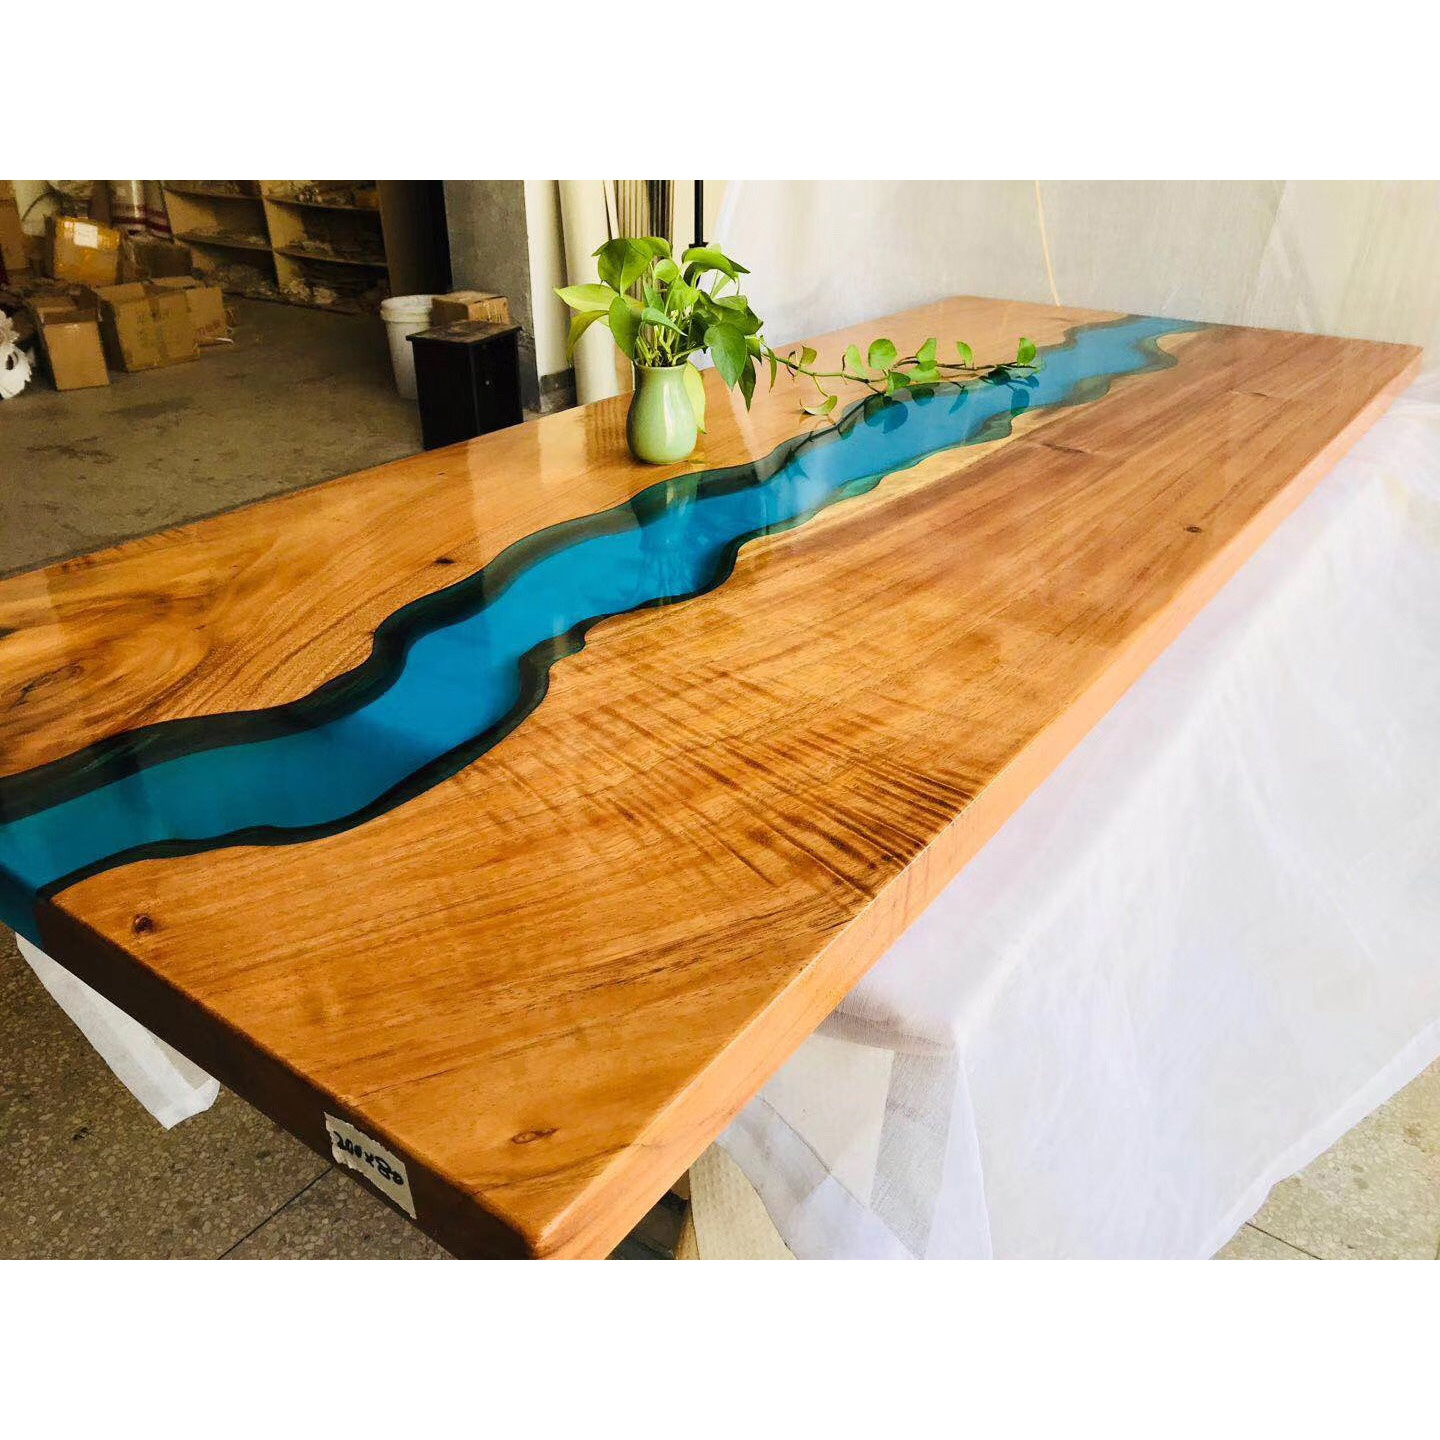 Interior Decoration Beautiful Art Design 6 Seater River Table Solid Wood With Clear Epoxy Resin Table Buy Epoxy Resin Table Epoxy Table Top Epoxy Dining Table Epoxy Resin Wood Table Clear